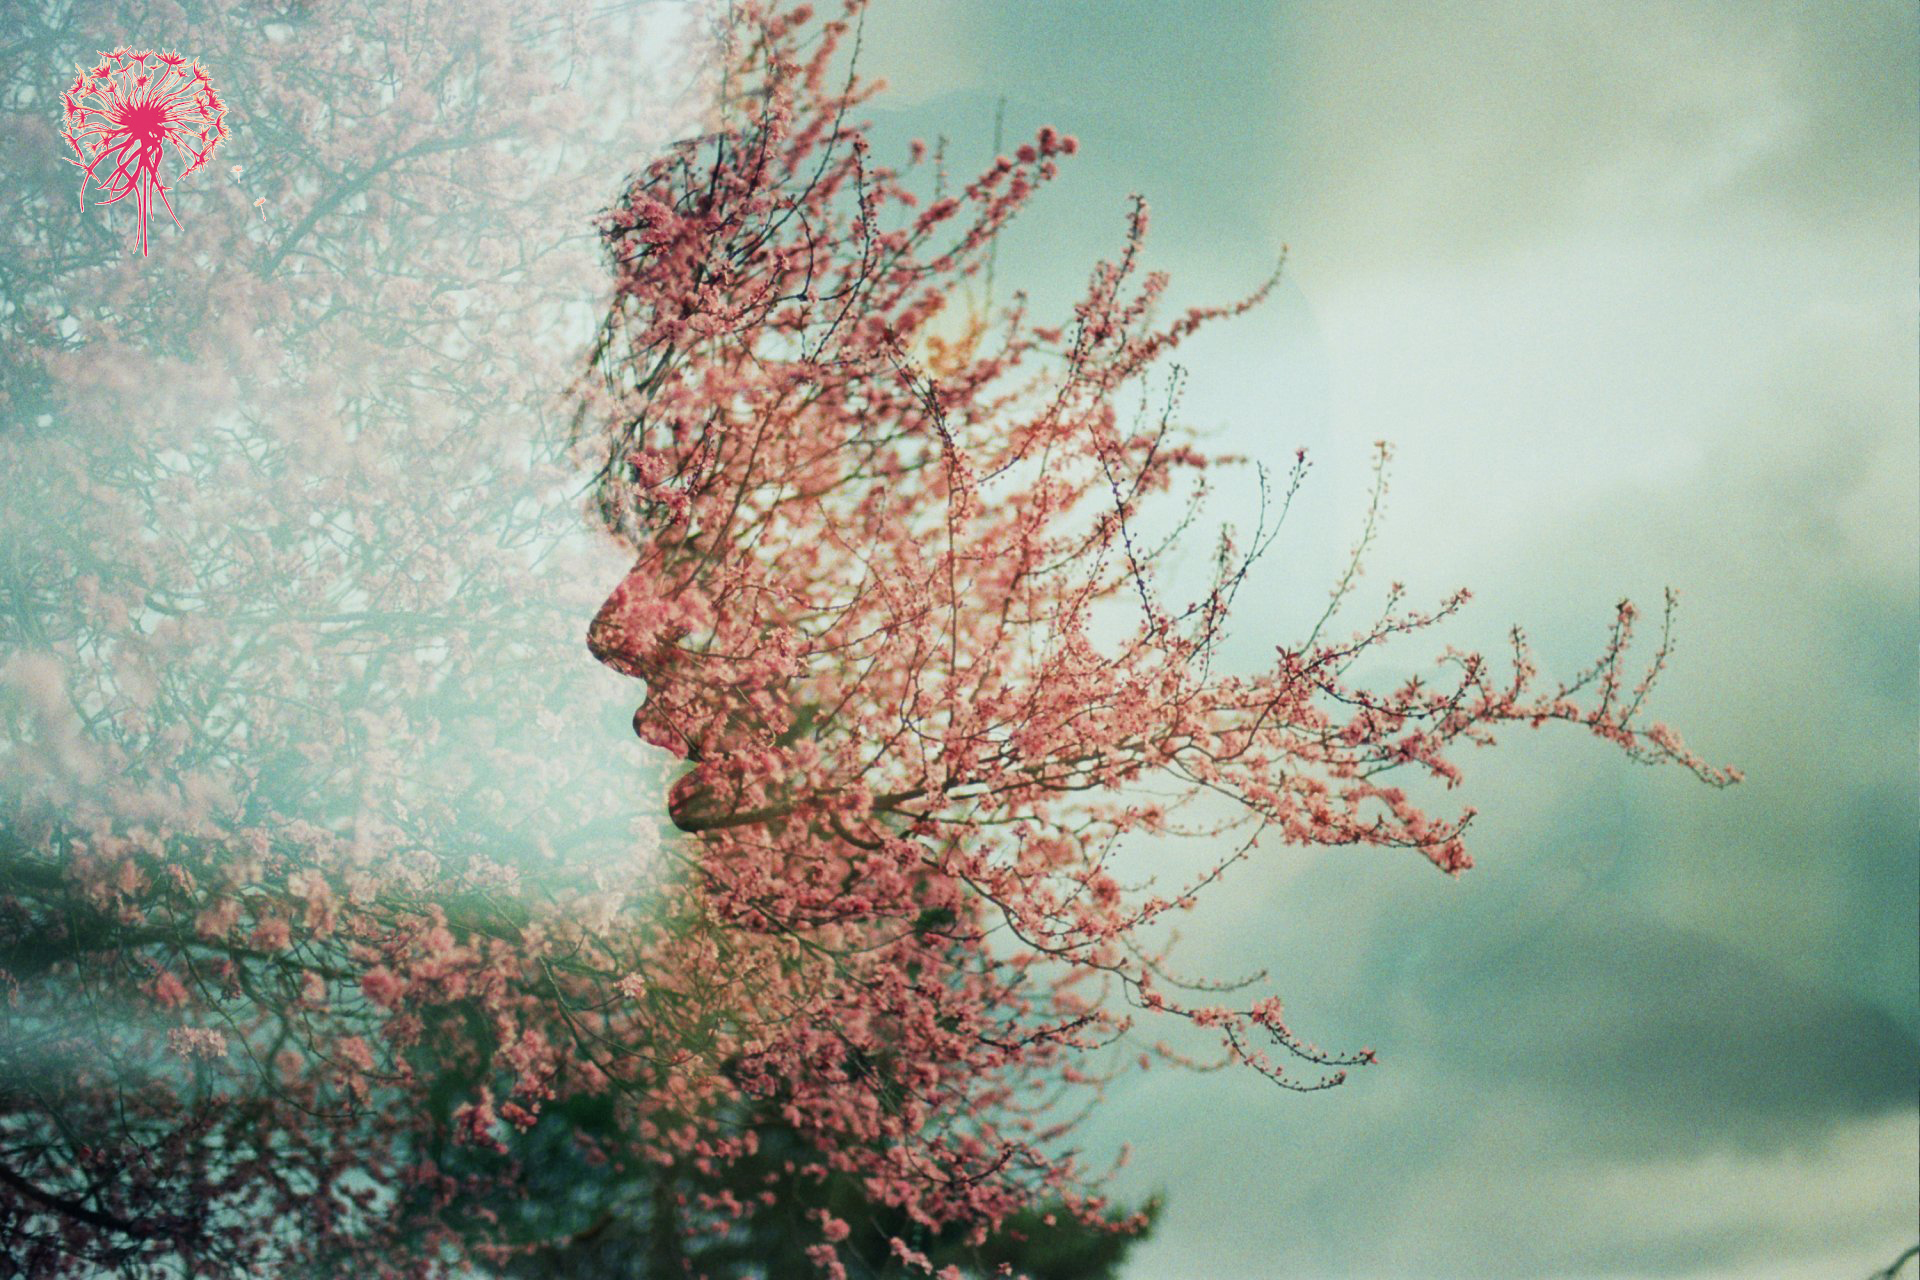 na-double-exposure-double-exposure-face-tree-flowers-spring copy